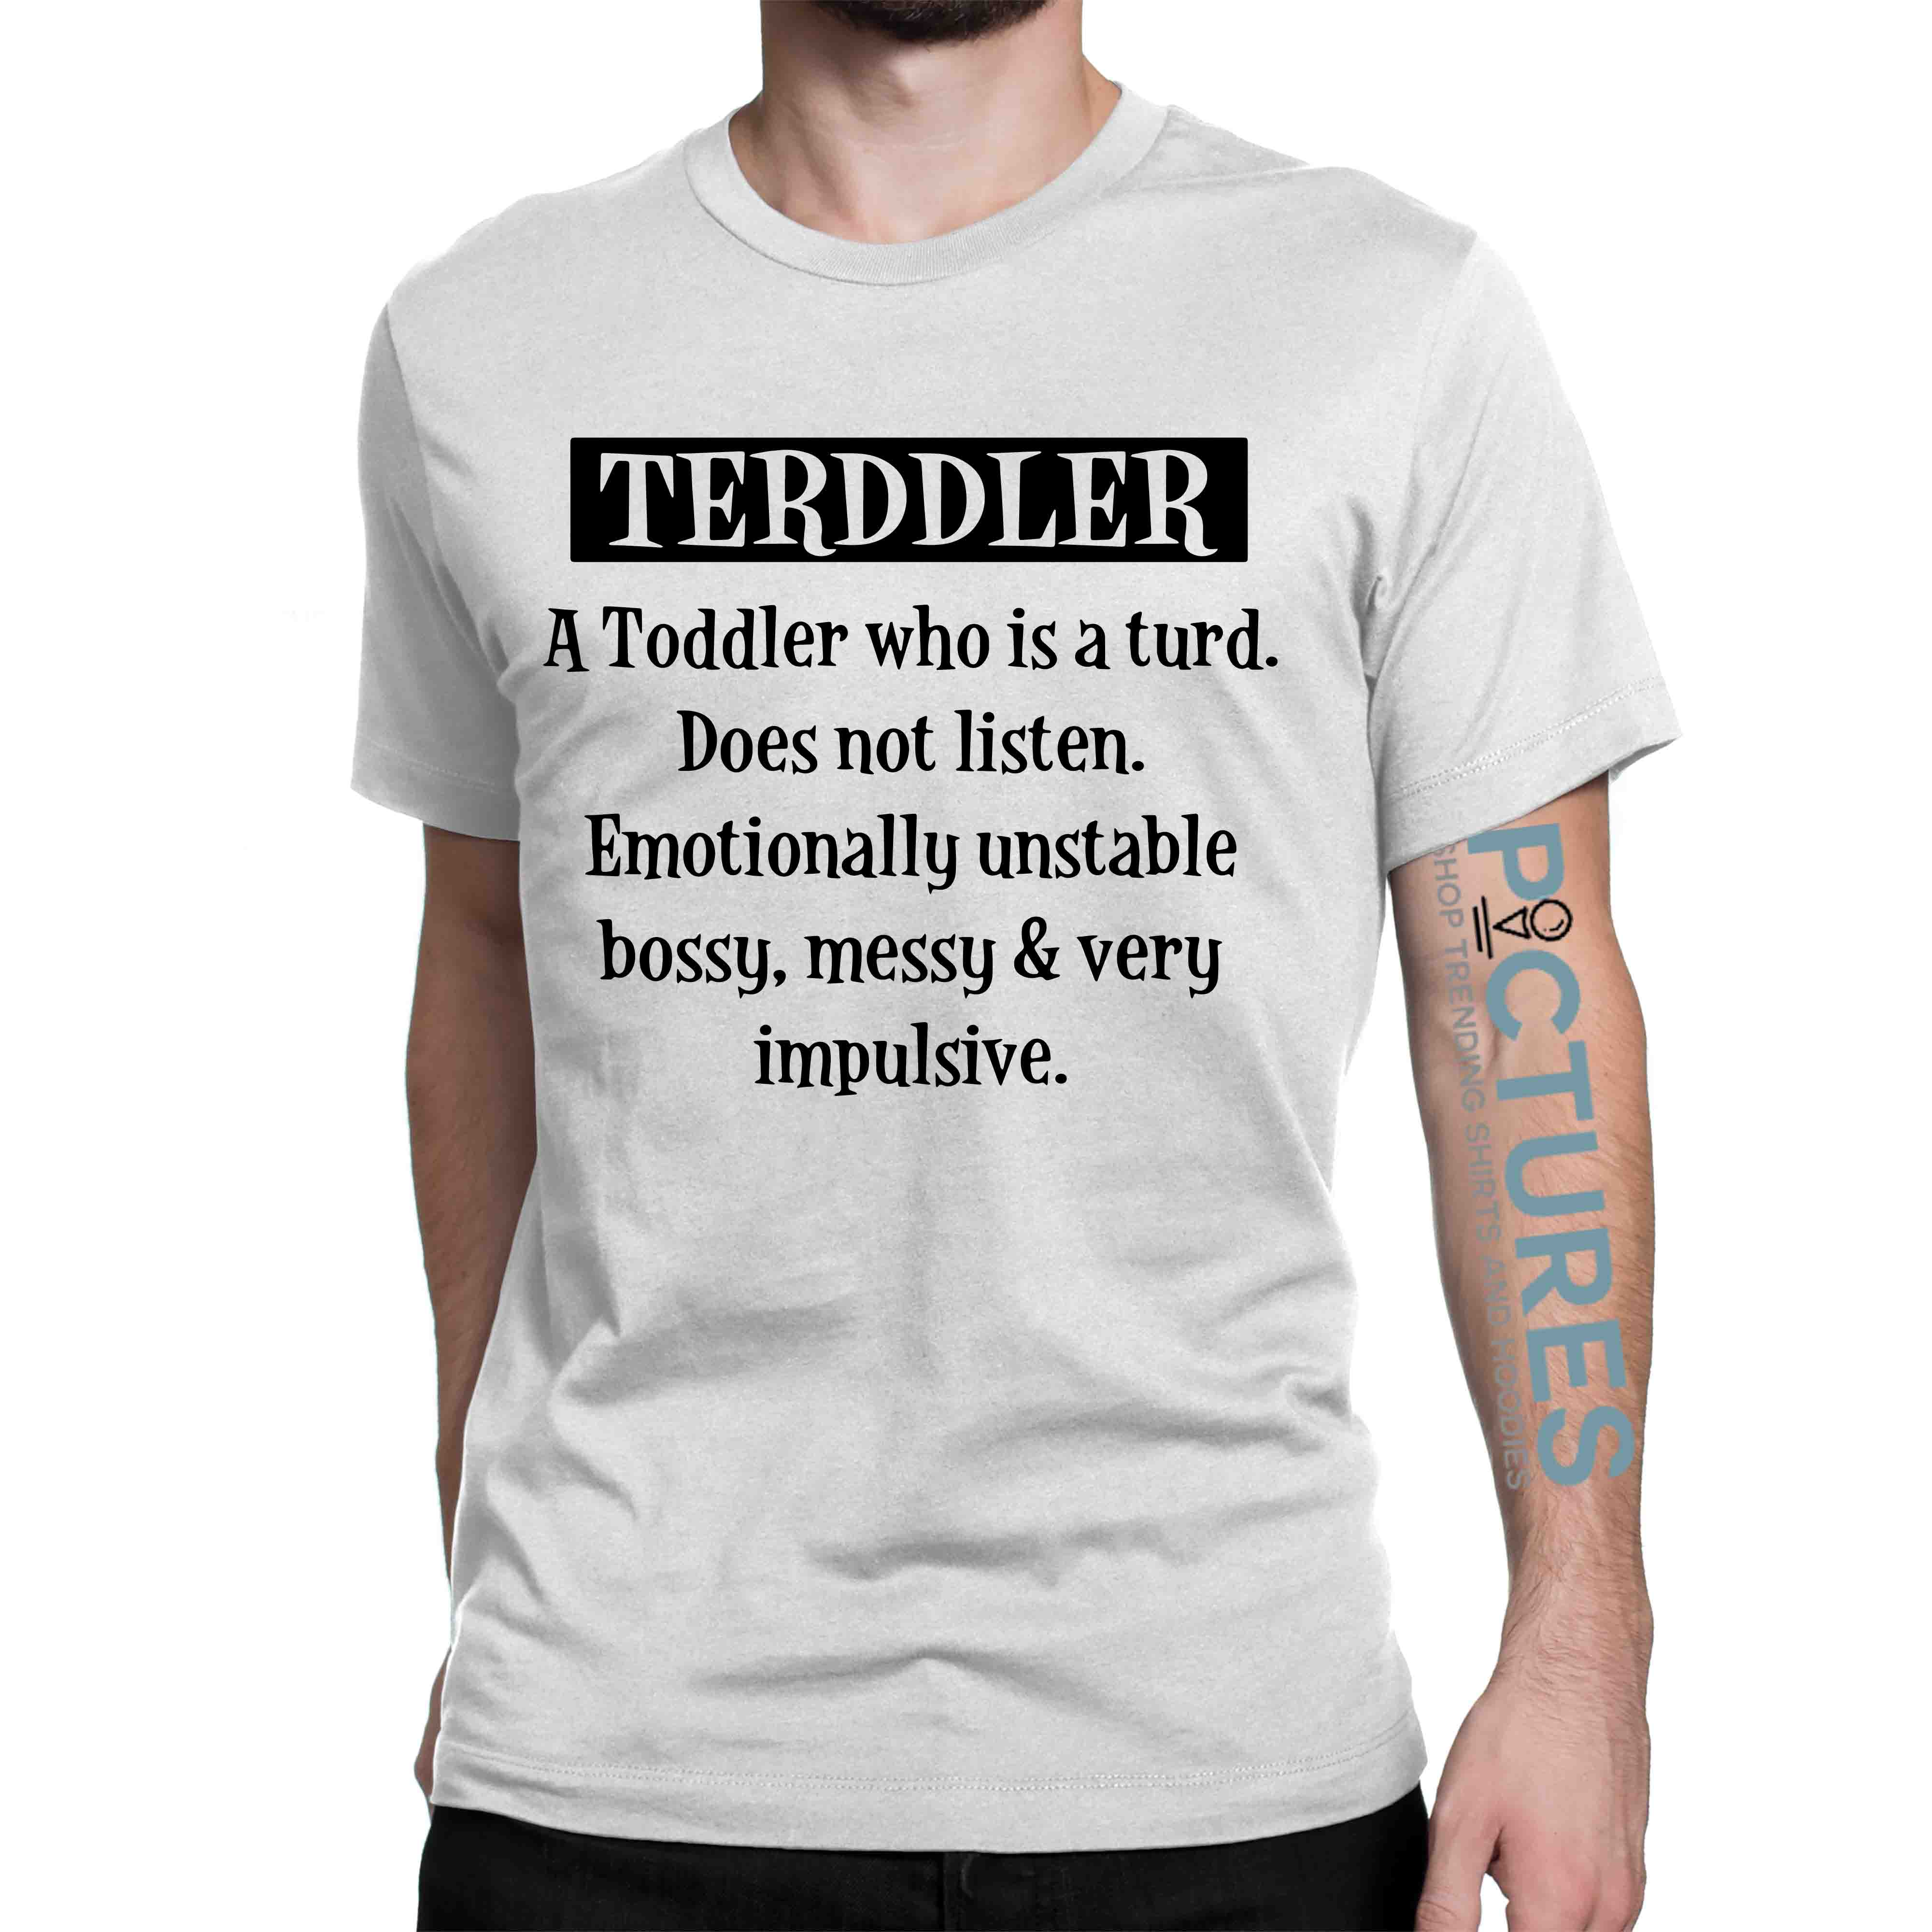 Terddler A Toddler Who Is Turd shirt